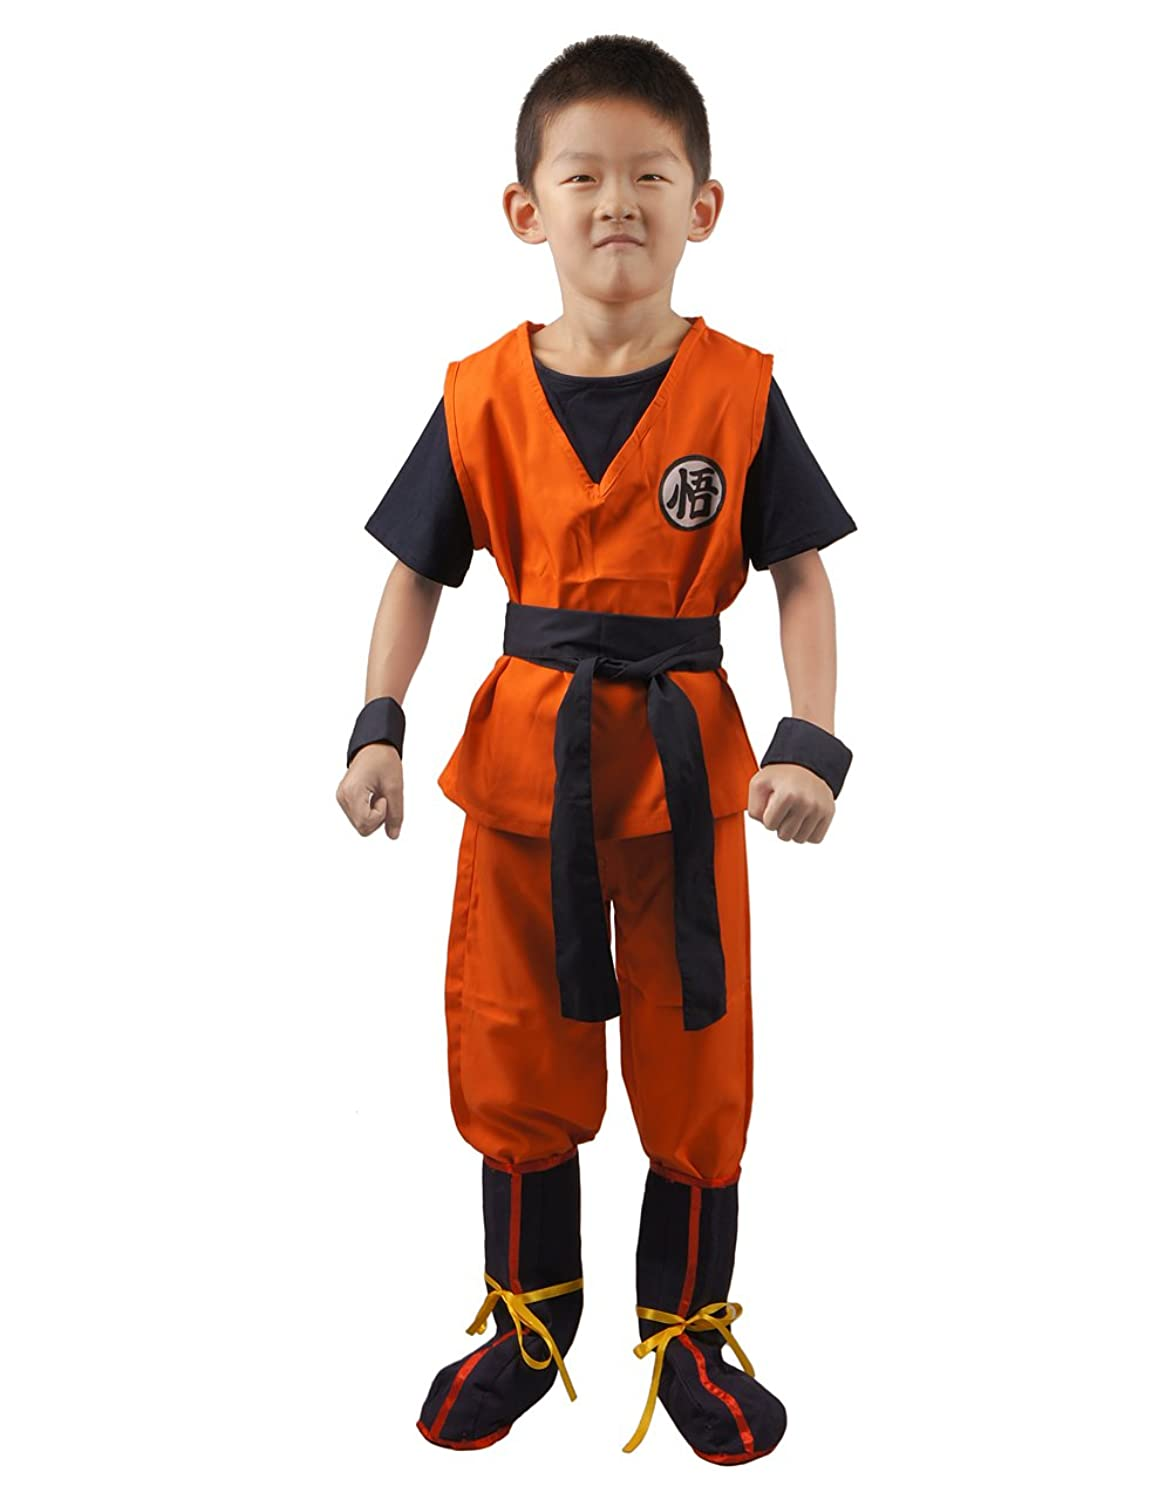 Amazon.com Miccostumes Boyu0027s Dragon Ball Son Goku Cosplay Costume Clothing  sc 1 st  Amazon.com & Amazon.com: Miccostumes Boyu0027s Dragon Ball Son Goku Cosplay Costume ...